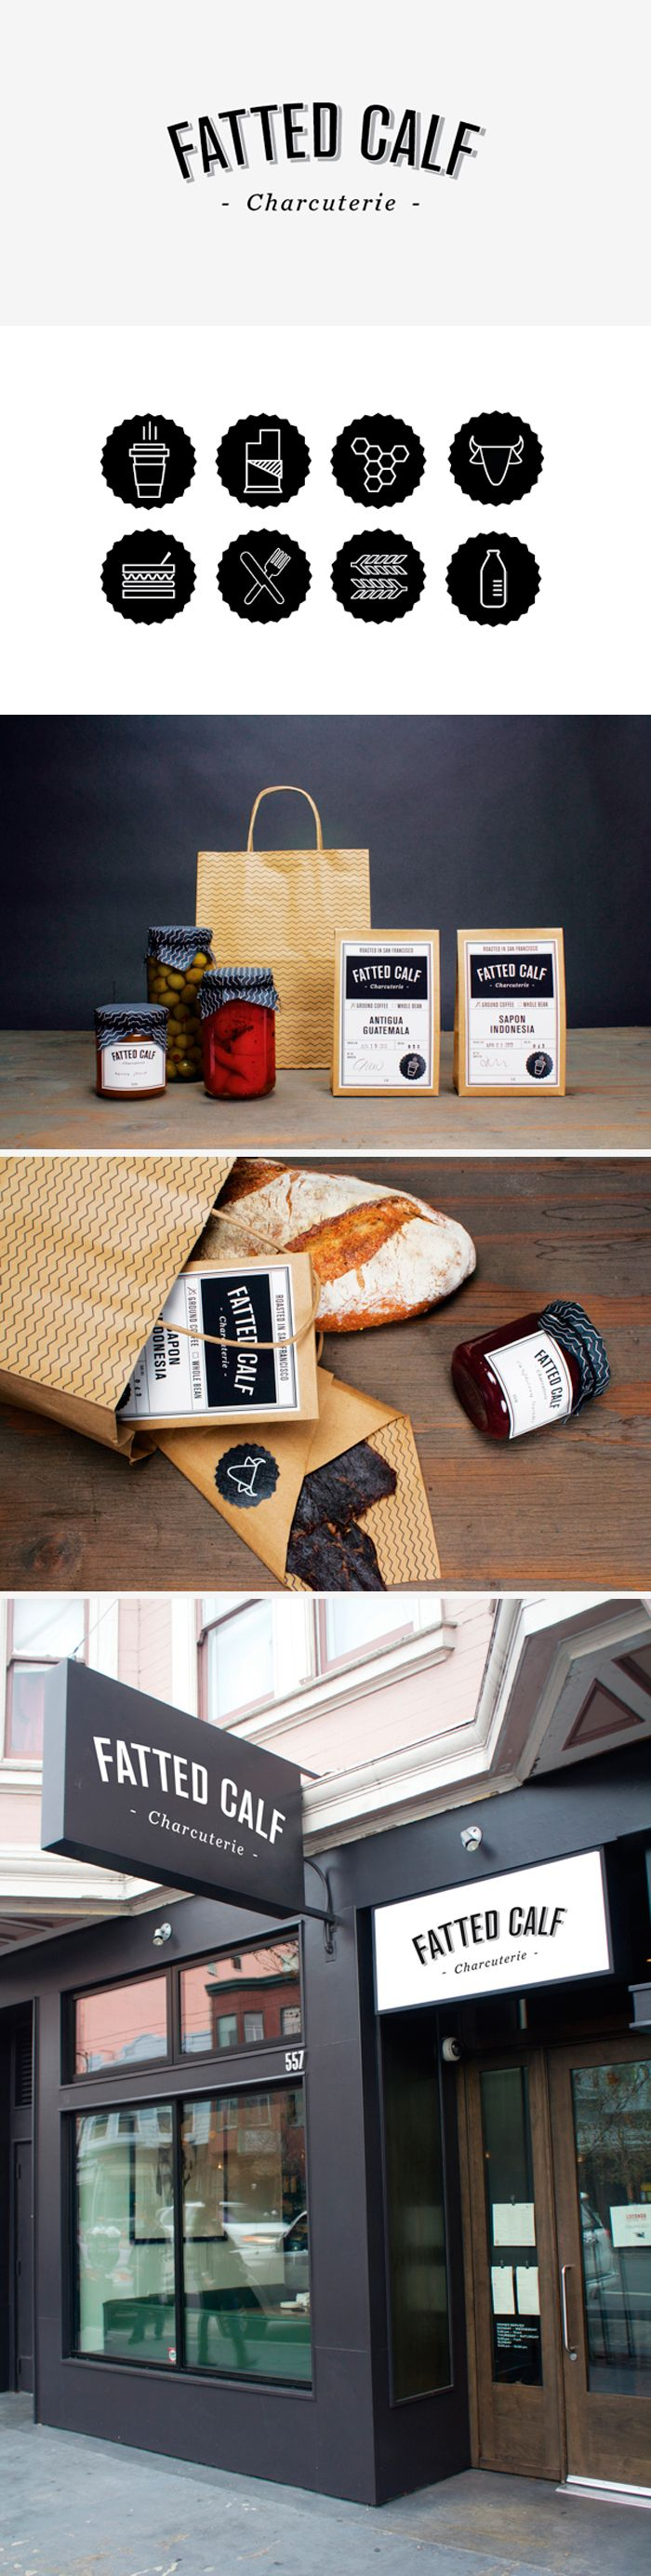 Fatted Calf #identity #packaging #branding PD